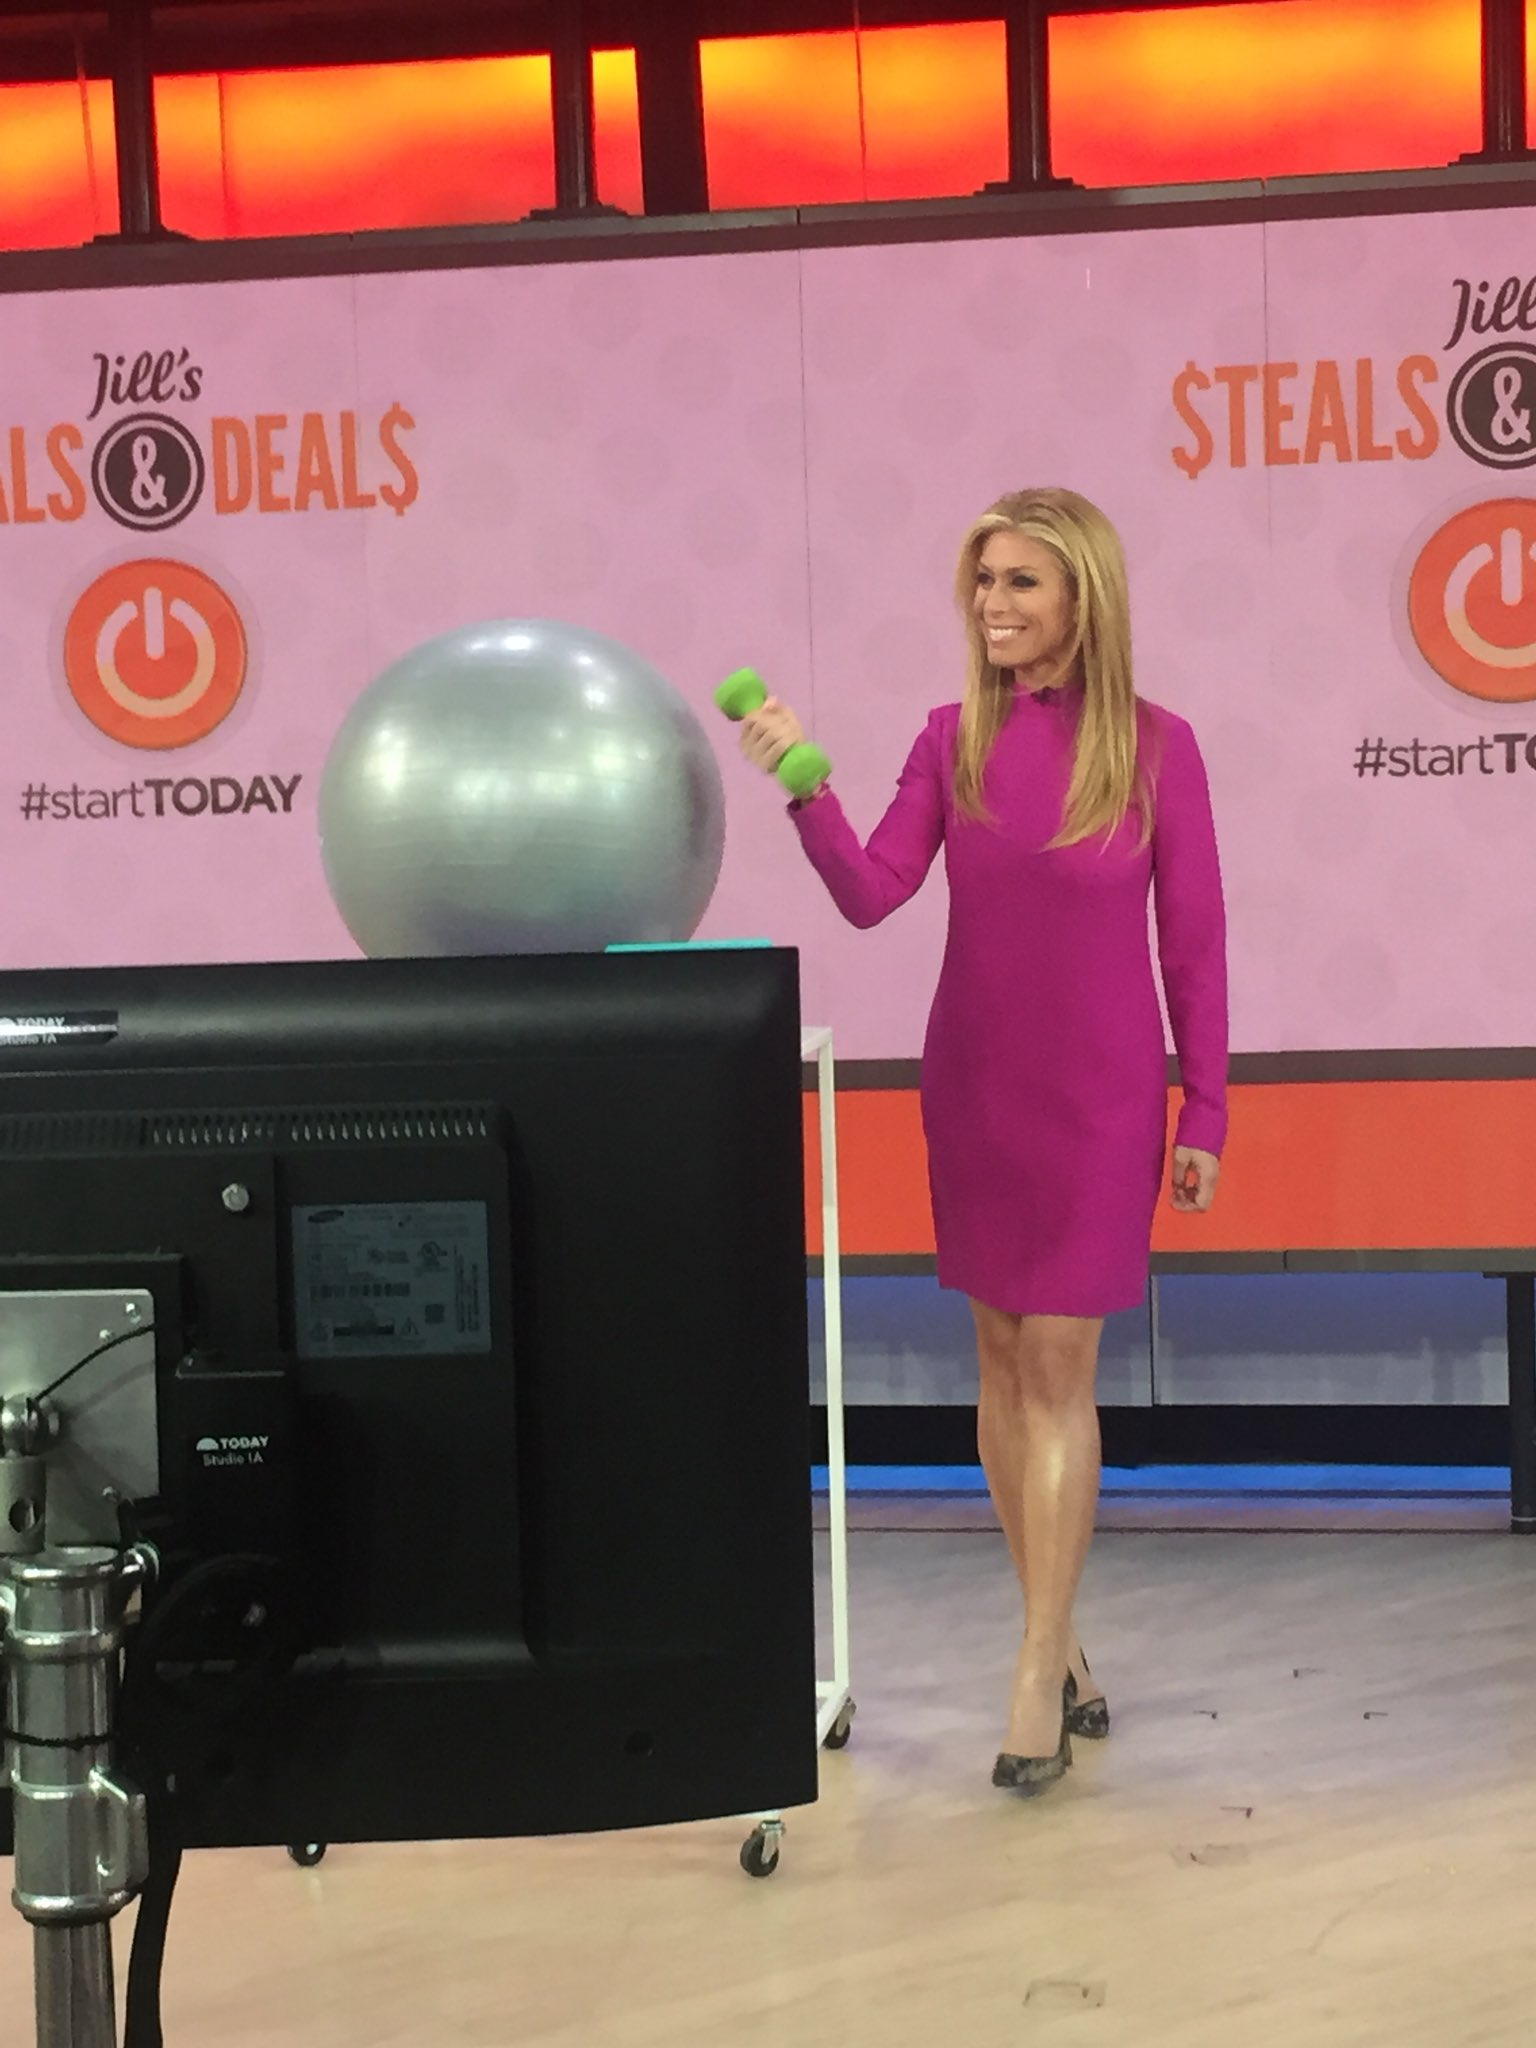 Jill Martin On Twitter Steals Deals Every Day This Month Yup We Kick It Off Today With Hodakotb Savannahguthrie Alroker Carsondaly Todayshow Https T Co Qcuyj9wdkg